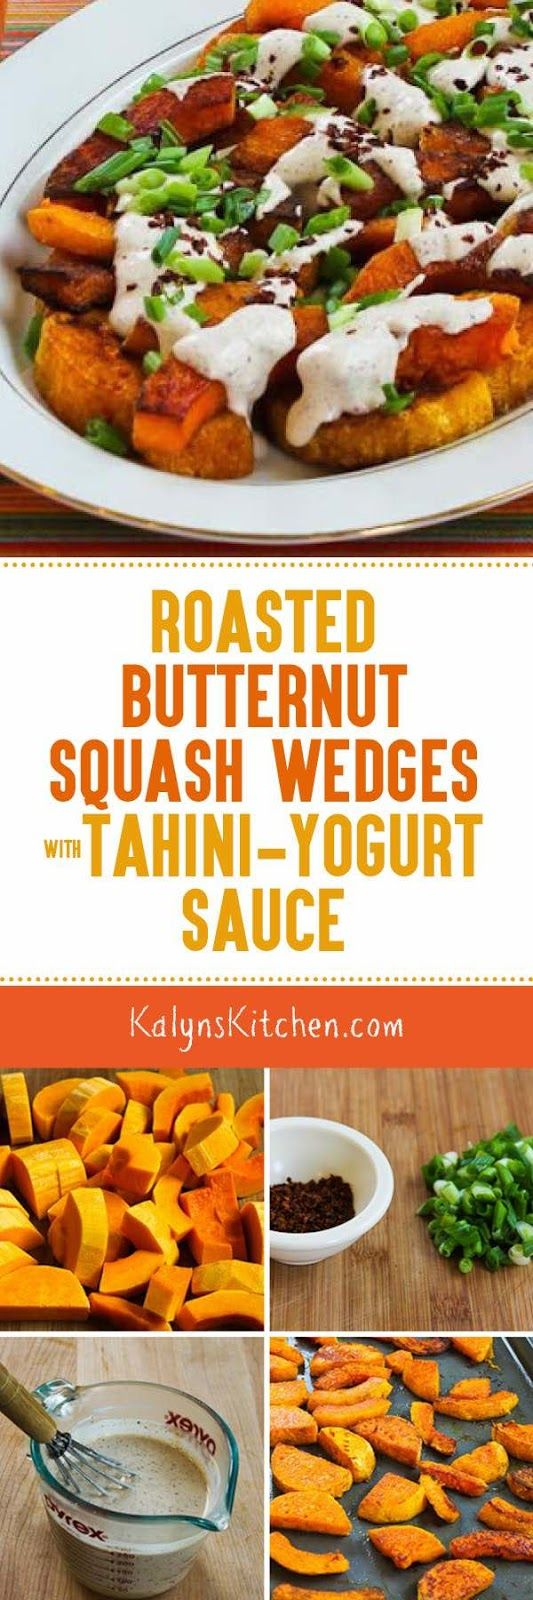 Roasted Butternut Squash Wedges with Tahini-Yogurt Sauce, Sumac, and Aleppo Pepper are amazing for a Meatless Monday dish, or serve this as a delicious side dish.  [found on KalynsKitchen.com] #ButternutSquash #SideDish #MeatlessMonday #RoastedButternutSquash